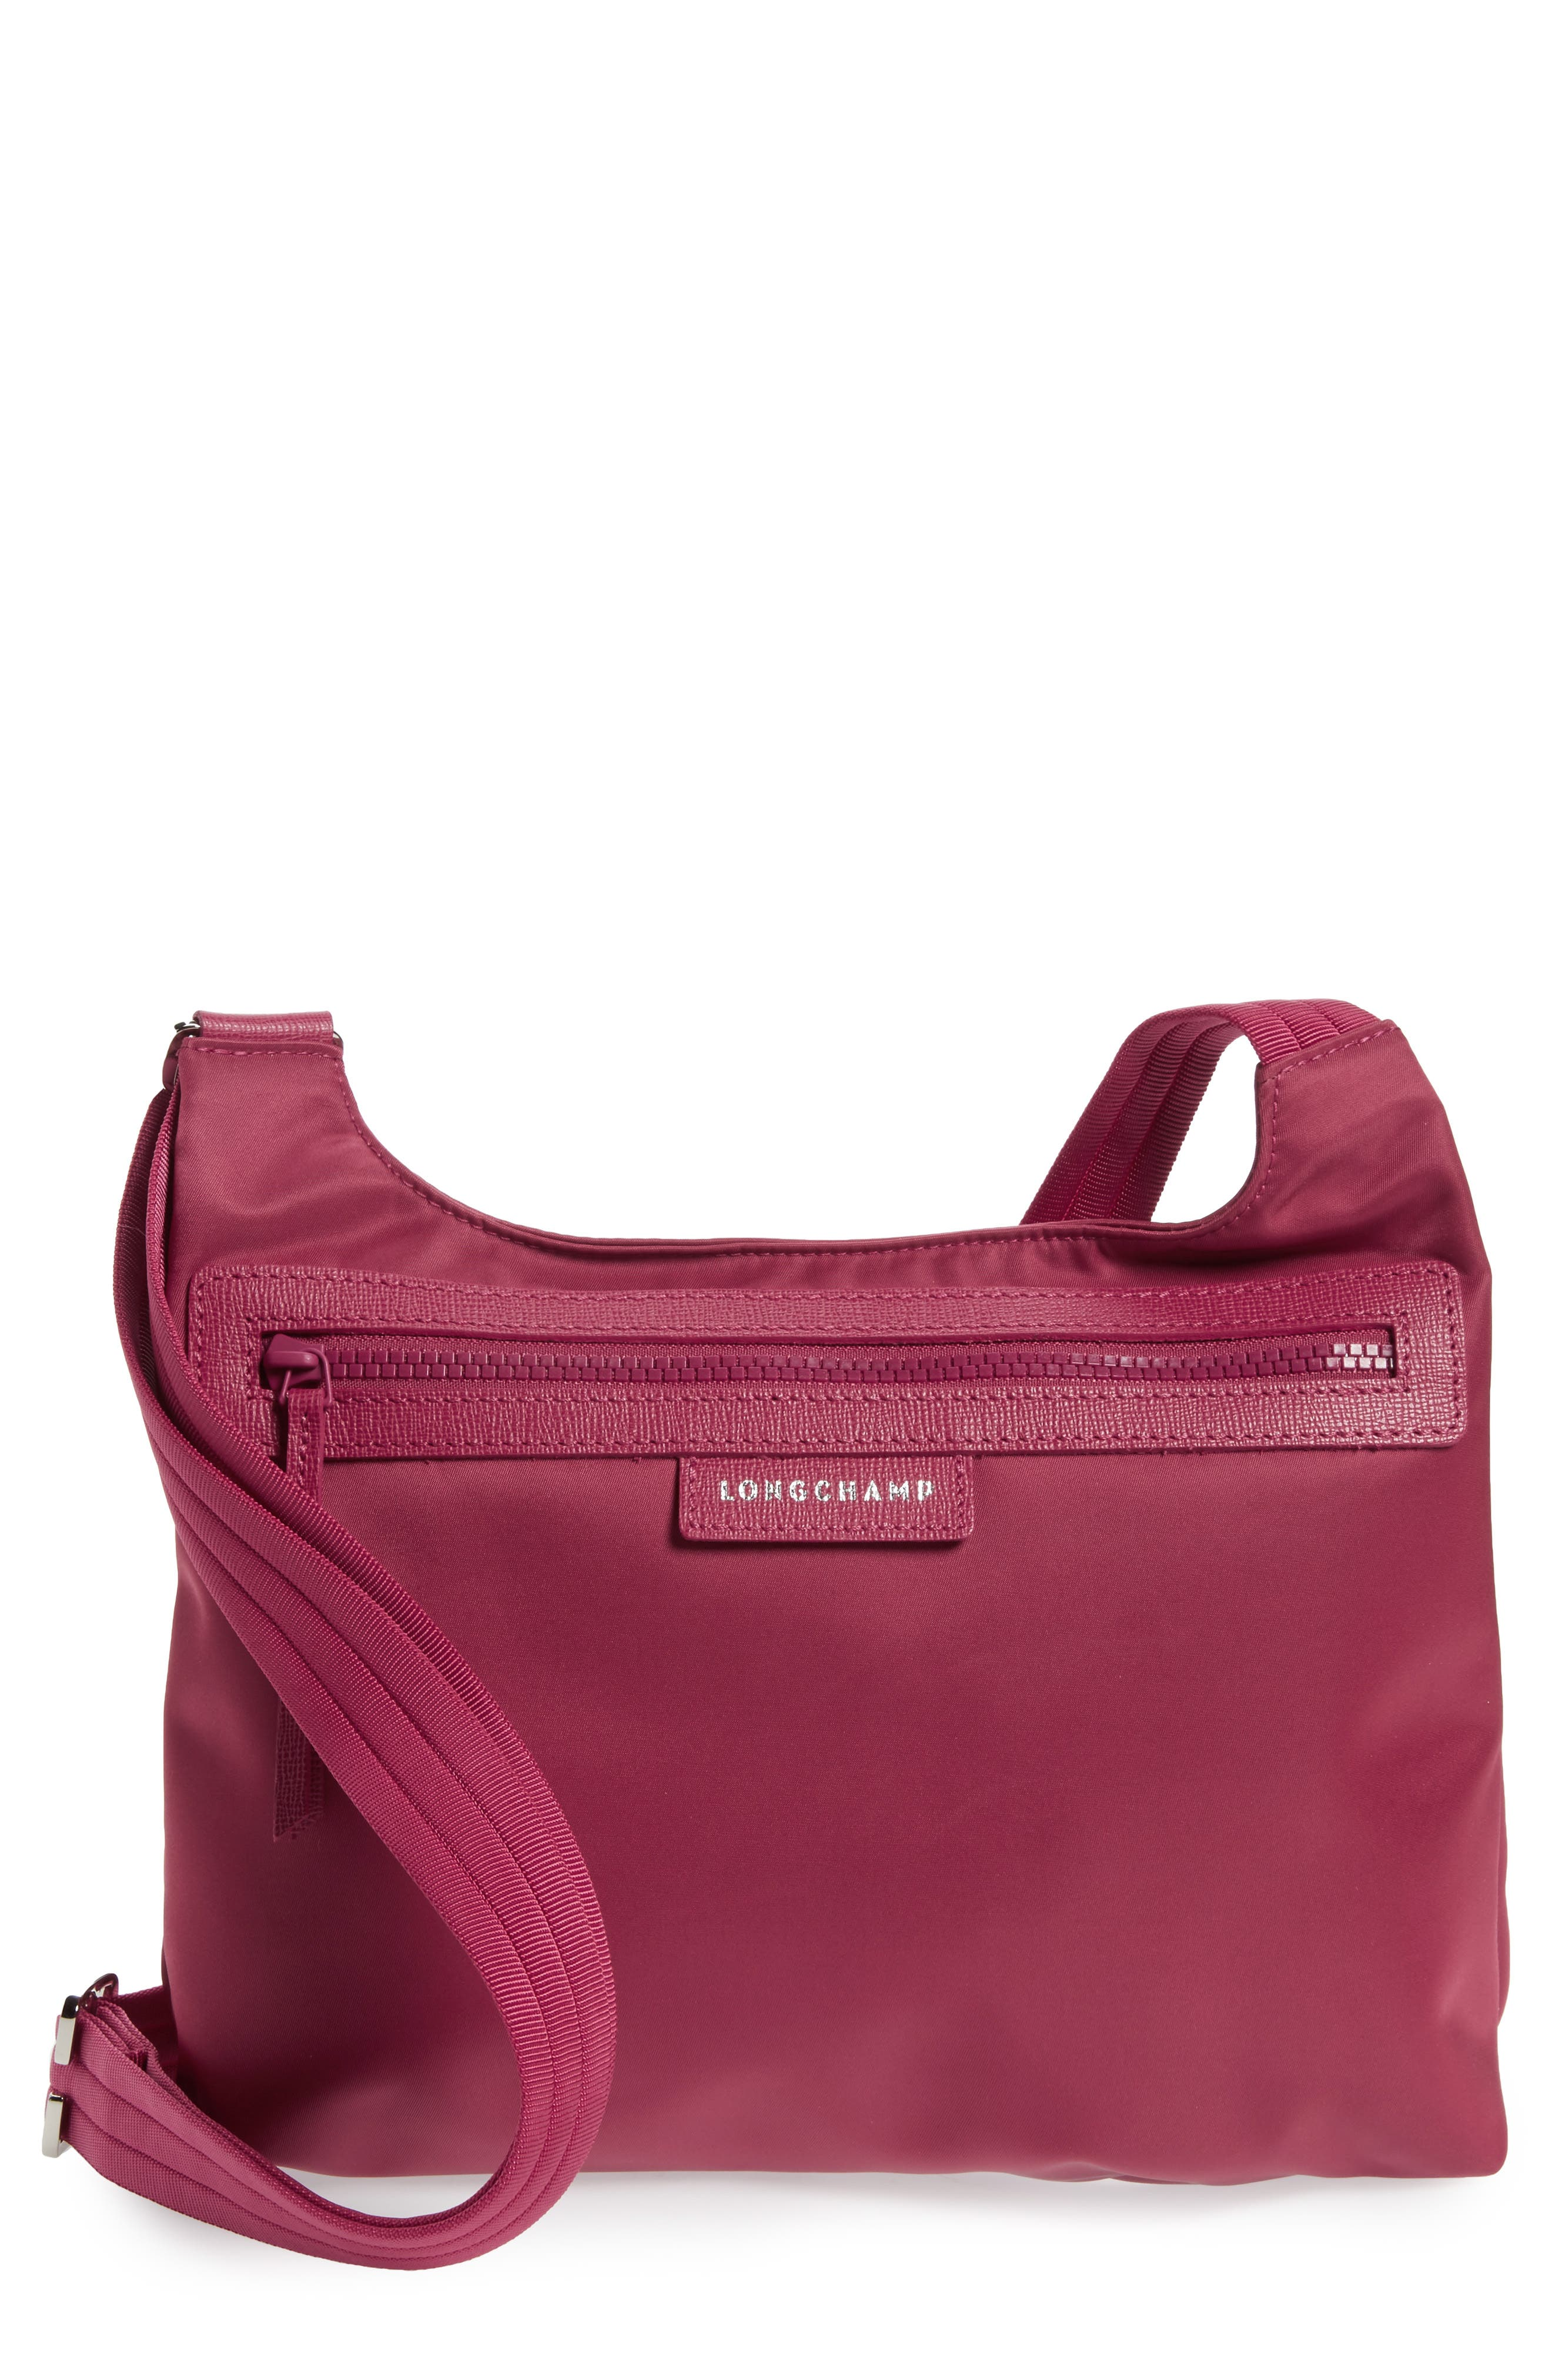 Alternate Image 1 Selected - Longchamp Le Pliage Neo Nylon Crossbody Bag